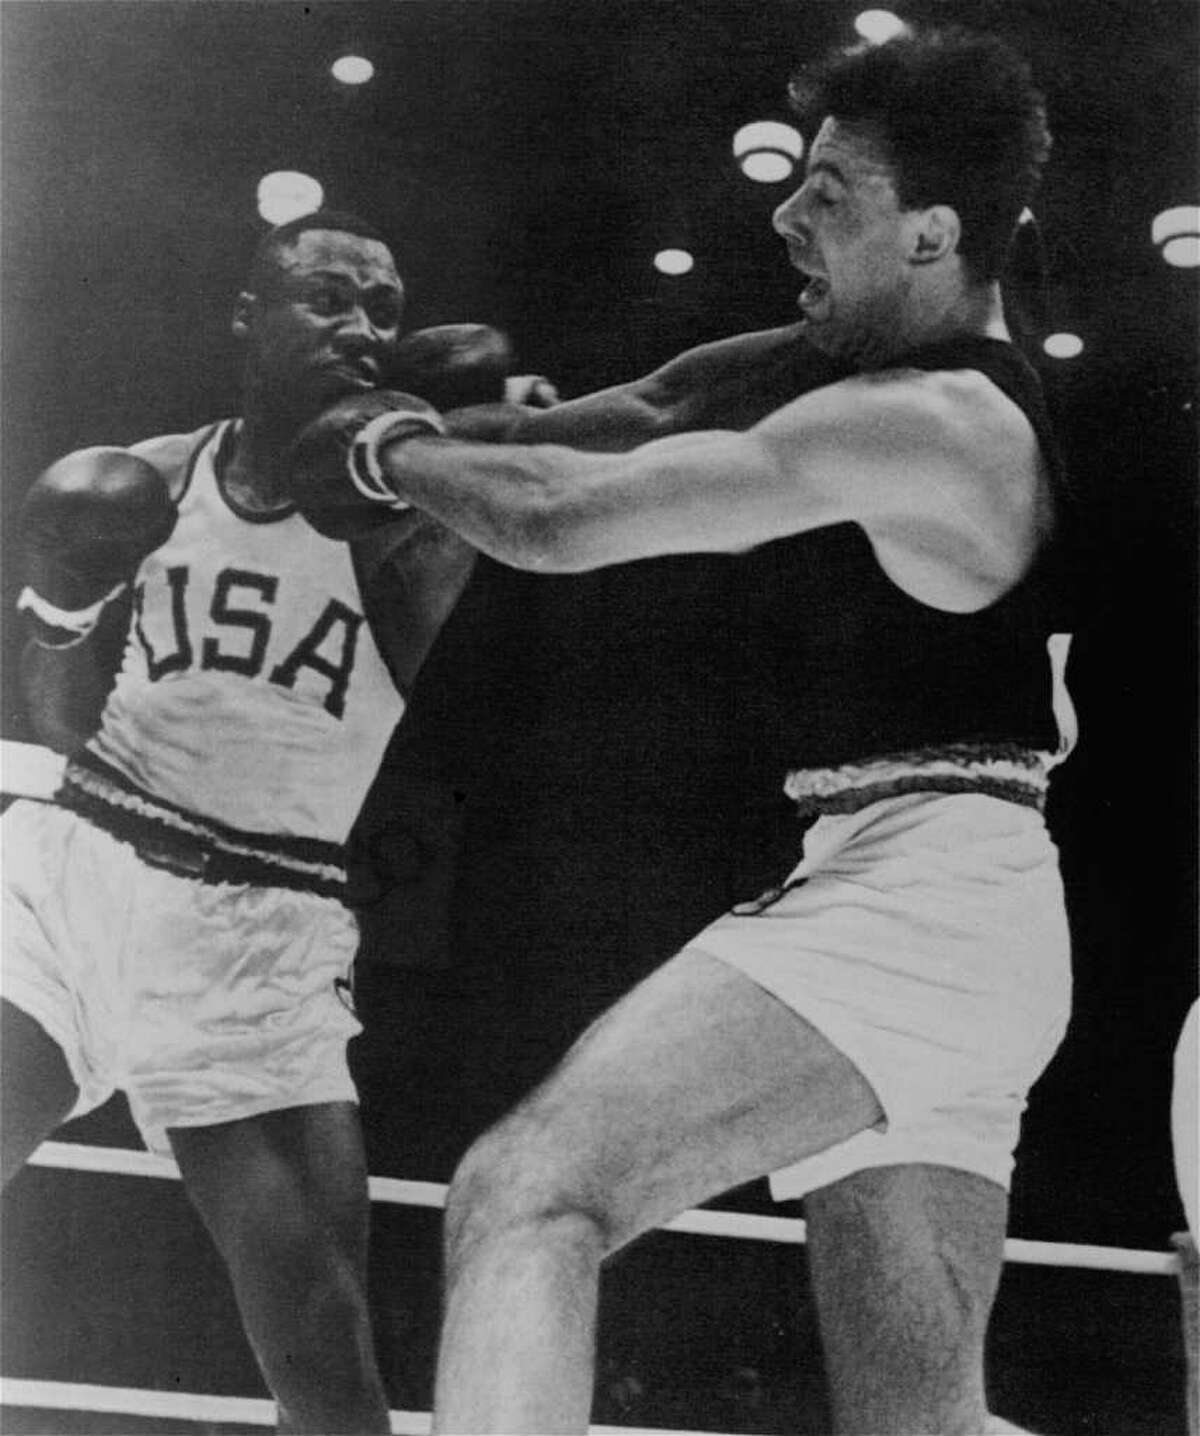 Frazier, left, throws a left to the head of Germany's Hans Huber in their Olympic title bout on Oct. 23, 1964 in Tokyo.